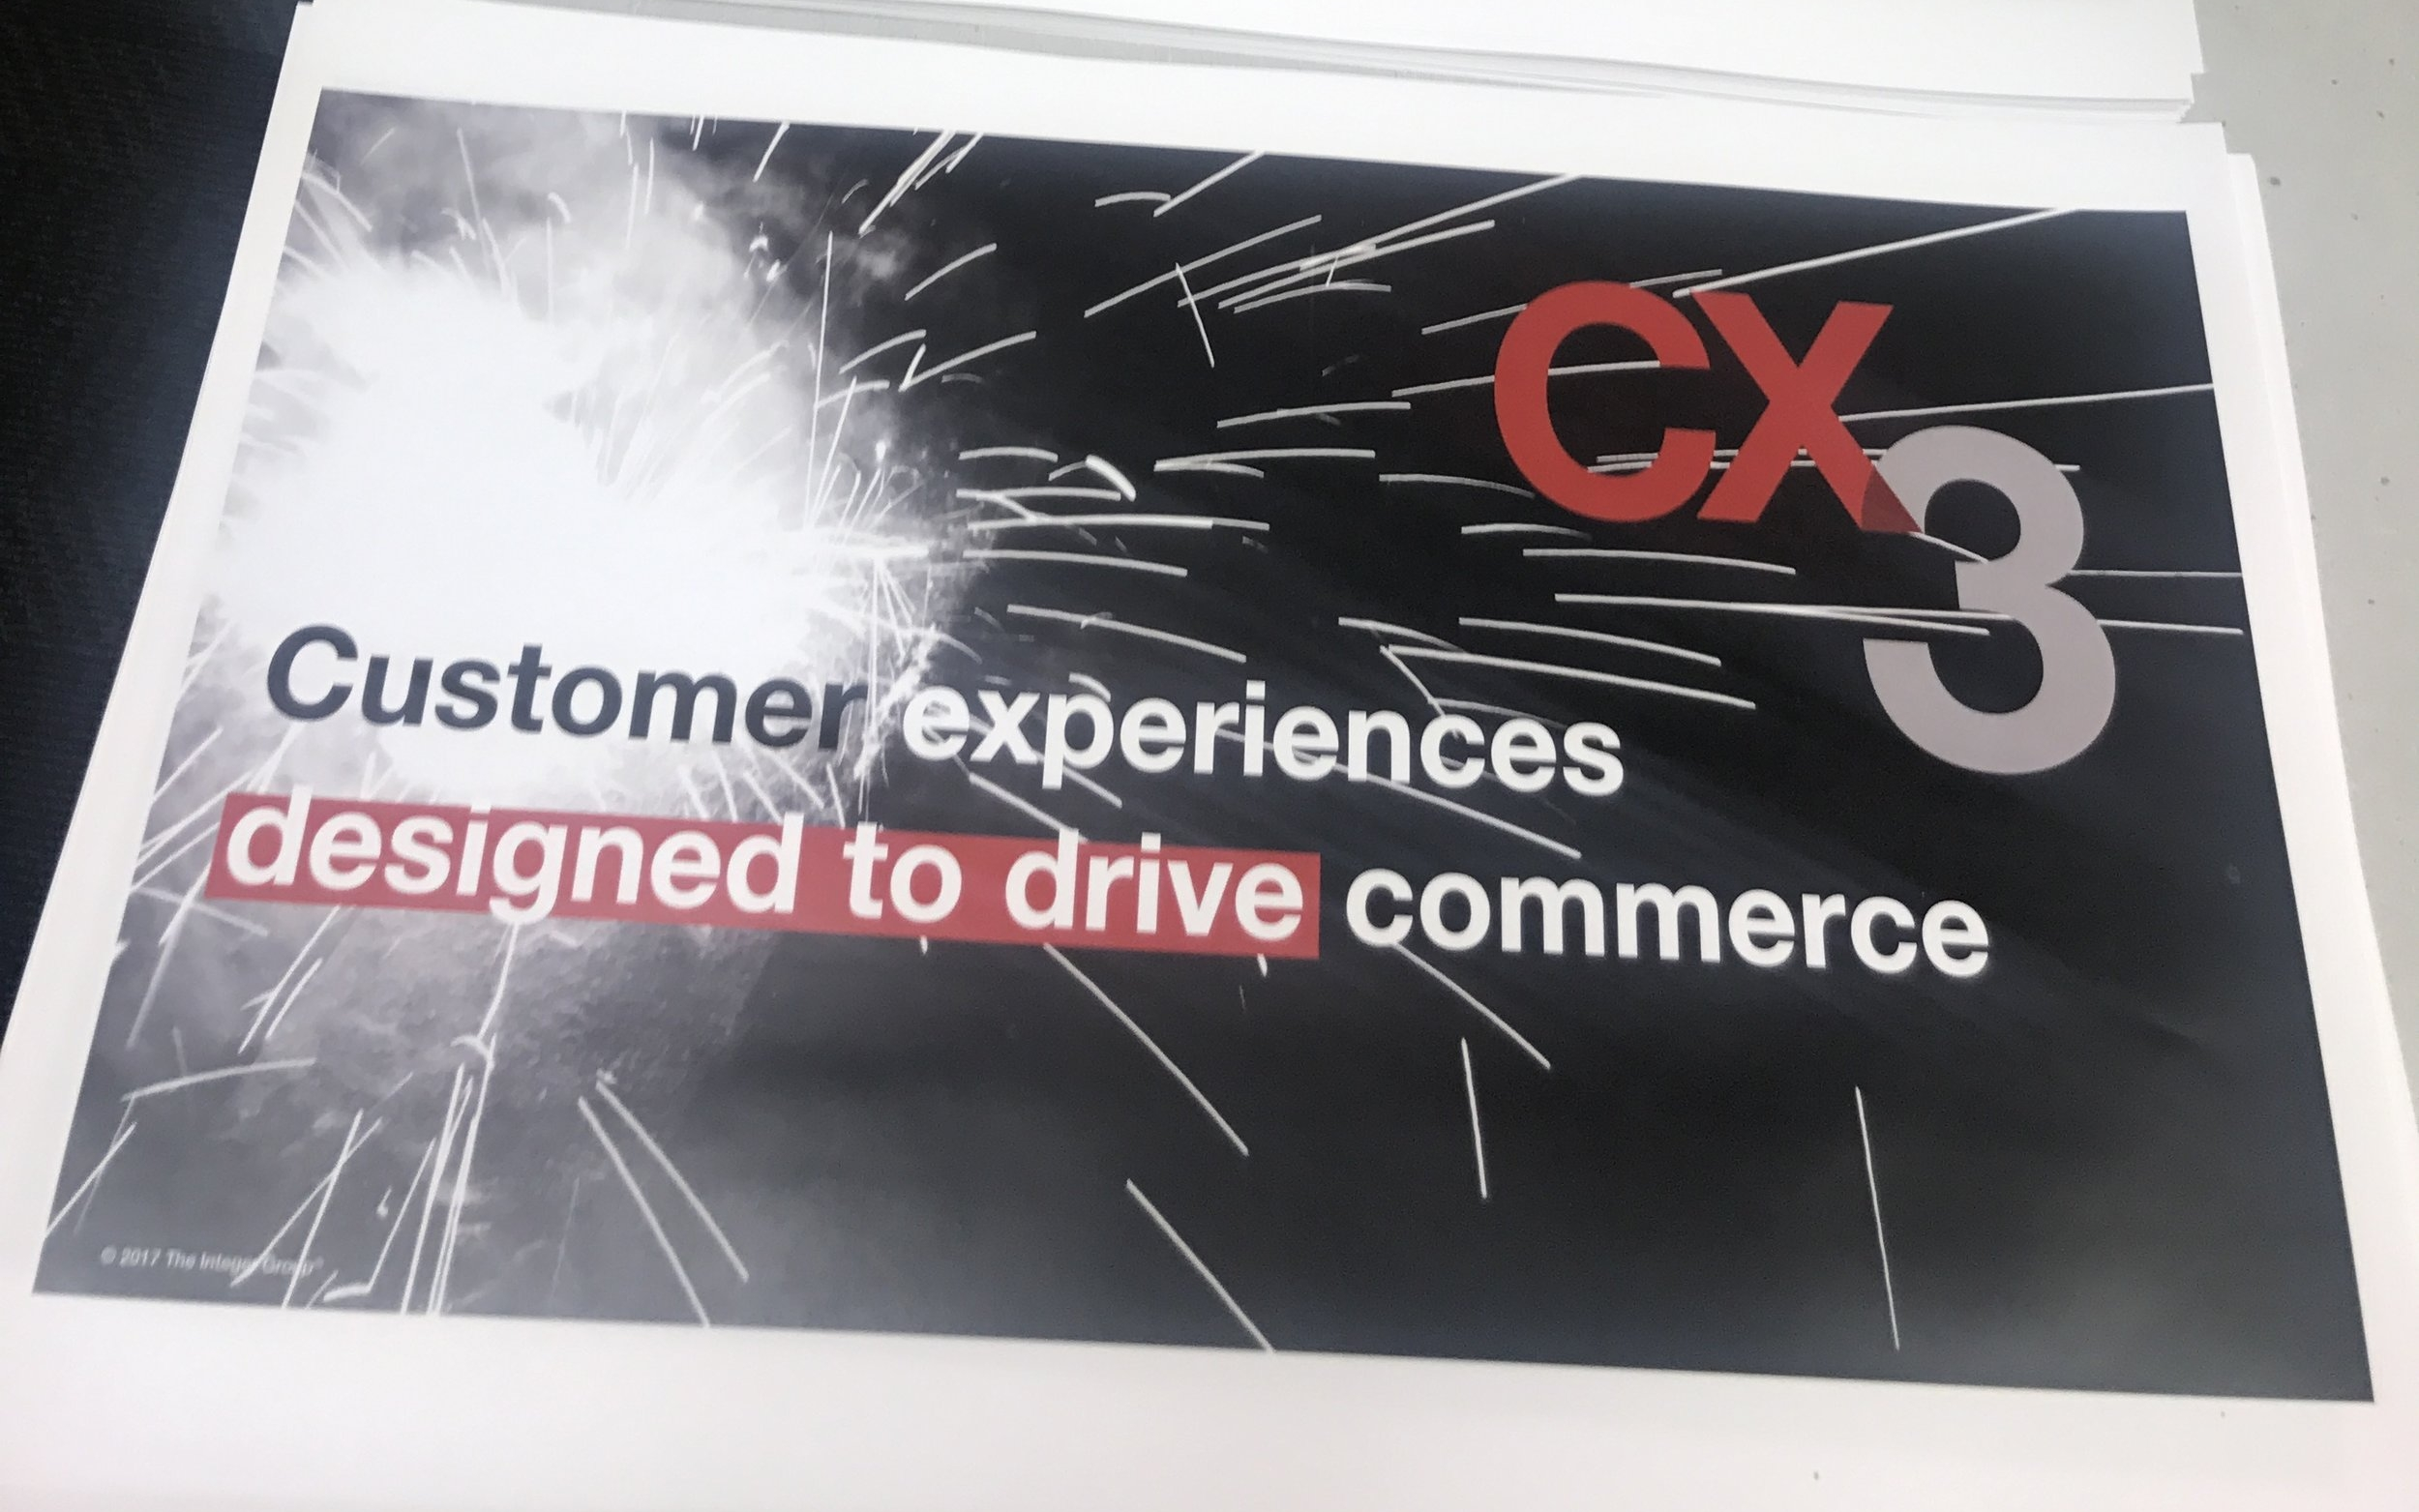 CX3 is Integer Groups proprietary CX transformation methodology